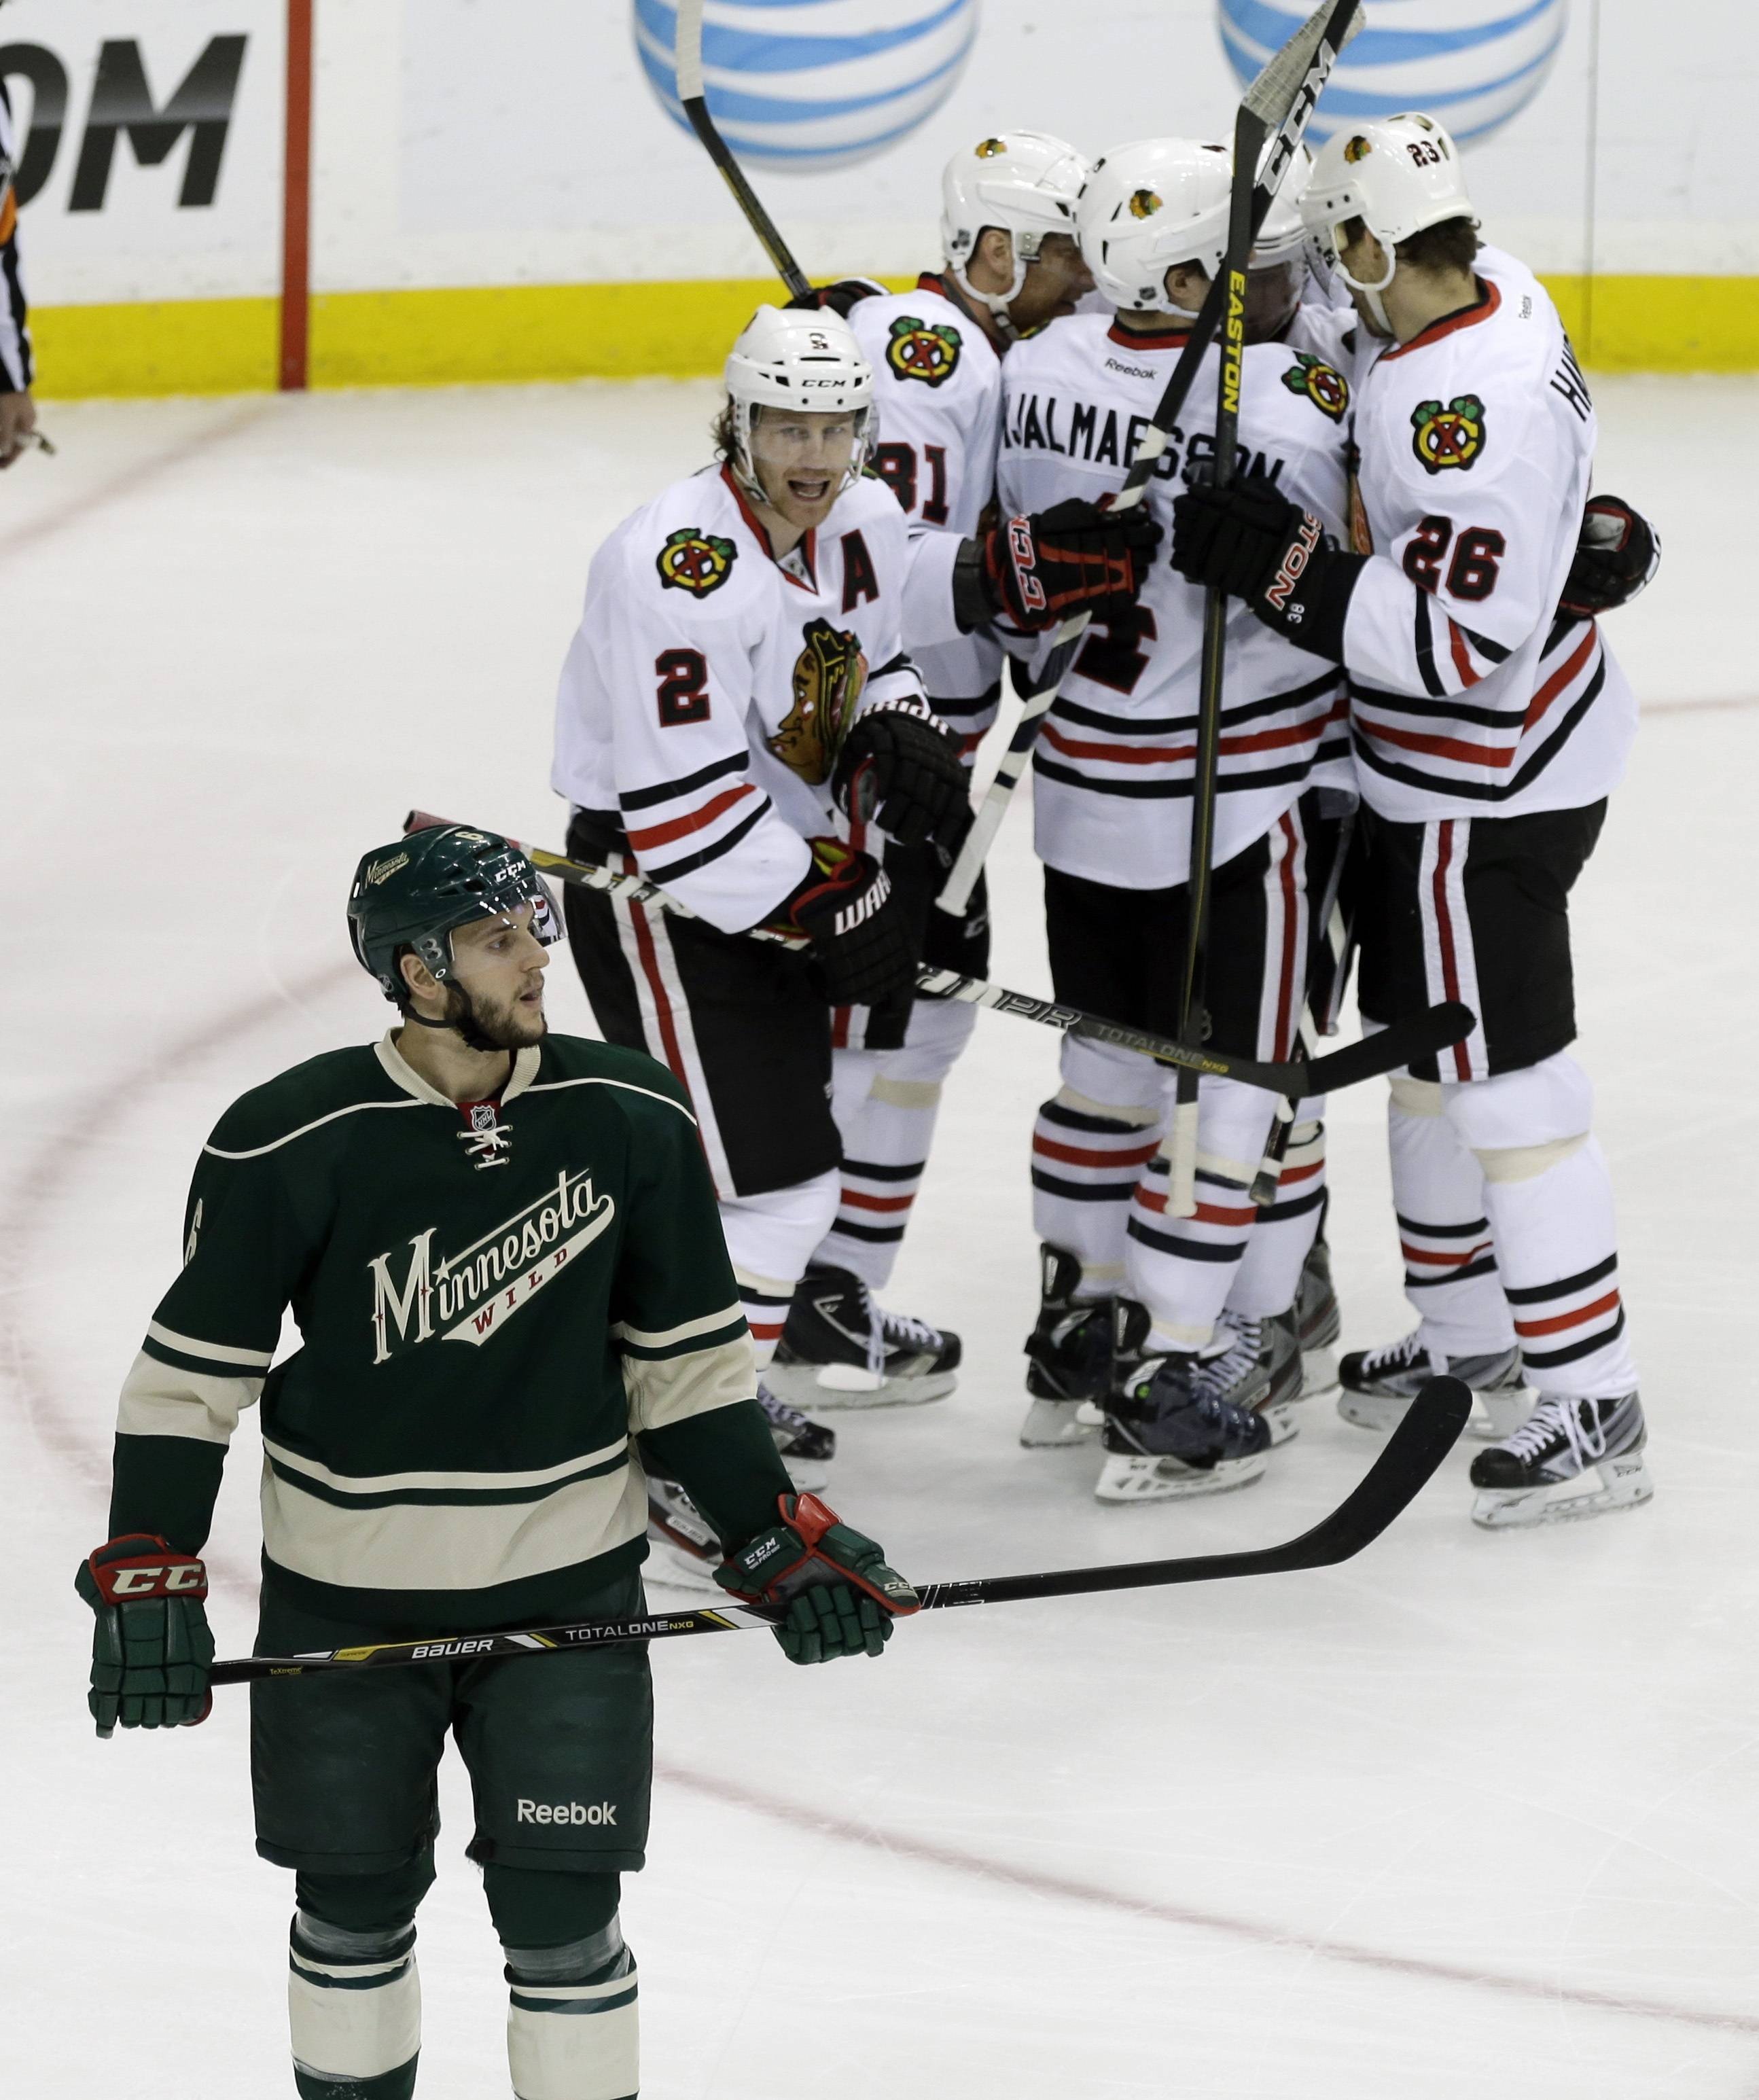 Chicago Blackhawks' Duncan Keith, top left, reacts toward Minnesota Wild's Marco Scandella, left, as Blackhawks players swarm around Patrick Sharp to celebrate his goal off Minnesota Wild goalie Josh Harding, bottom, in the first period of Game 4 of an NHL hockey Stanley Cup playoff series, Tuesday, May 7, 2013 in St. Paul, Minn. The Blackhawks won 3-0.